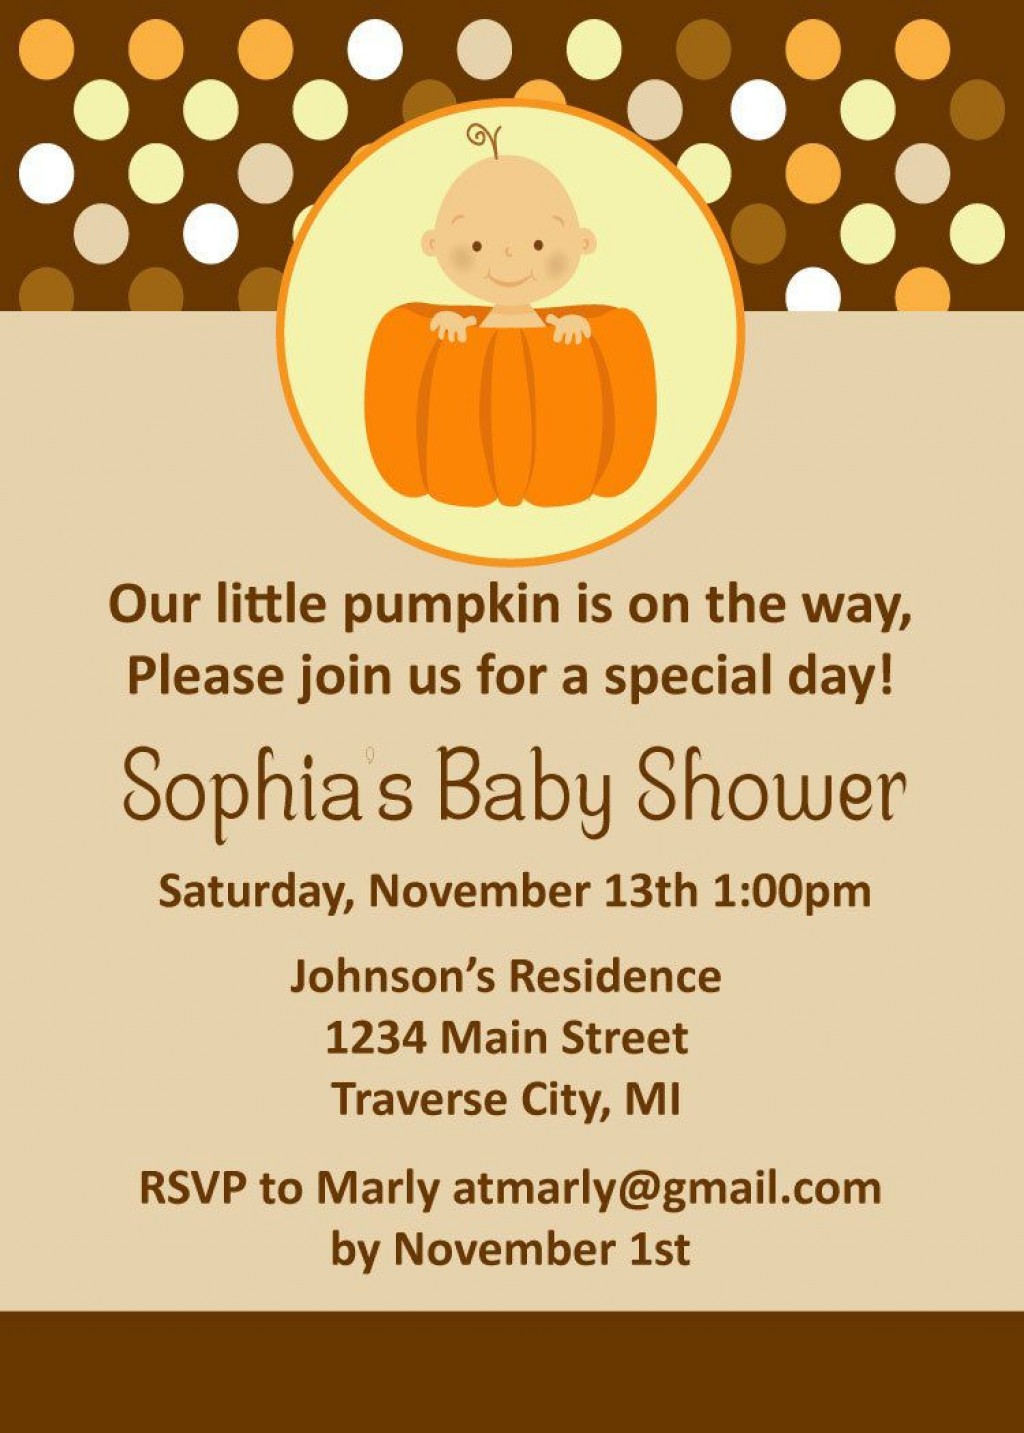 008 Striking Baby Shower Invitation Girl Pumpkin Image  Pink LittleLarge